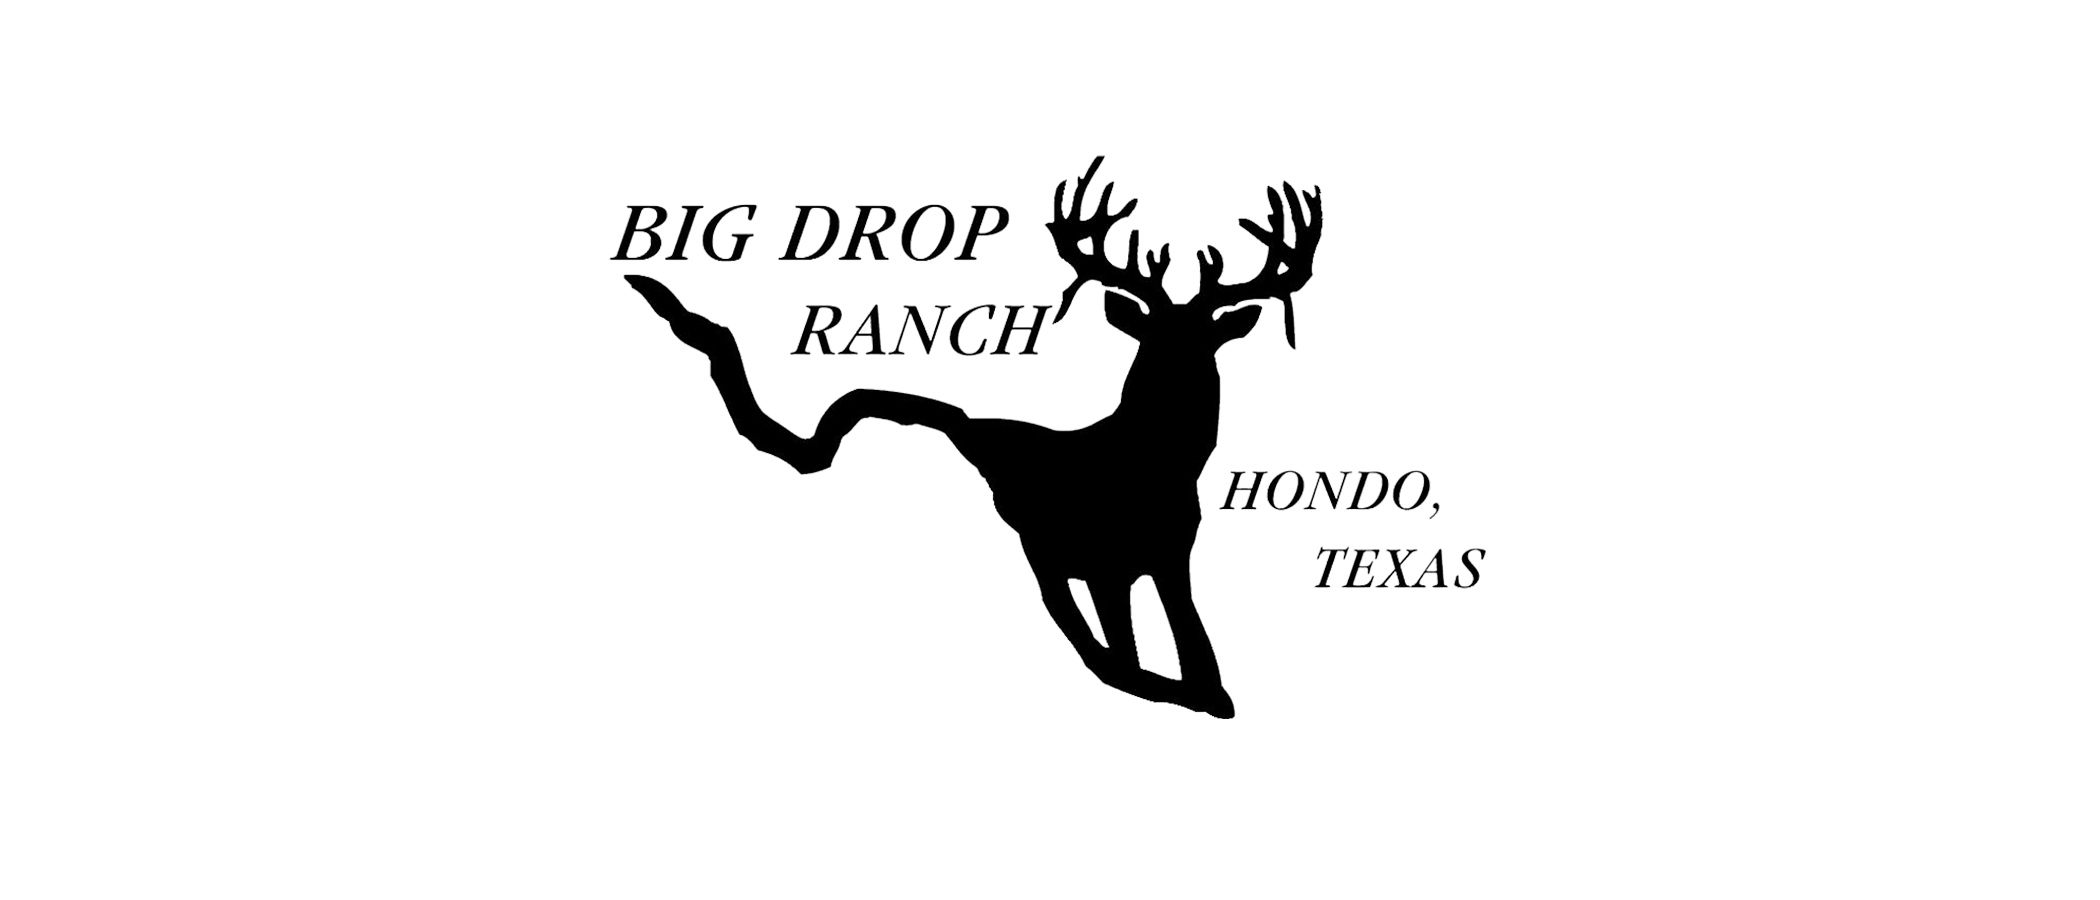 Big Drop Ranch